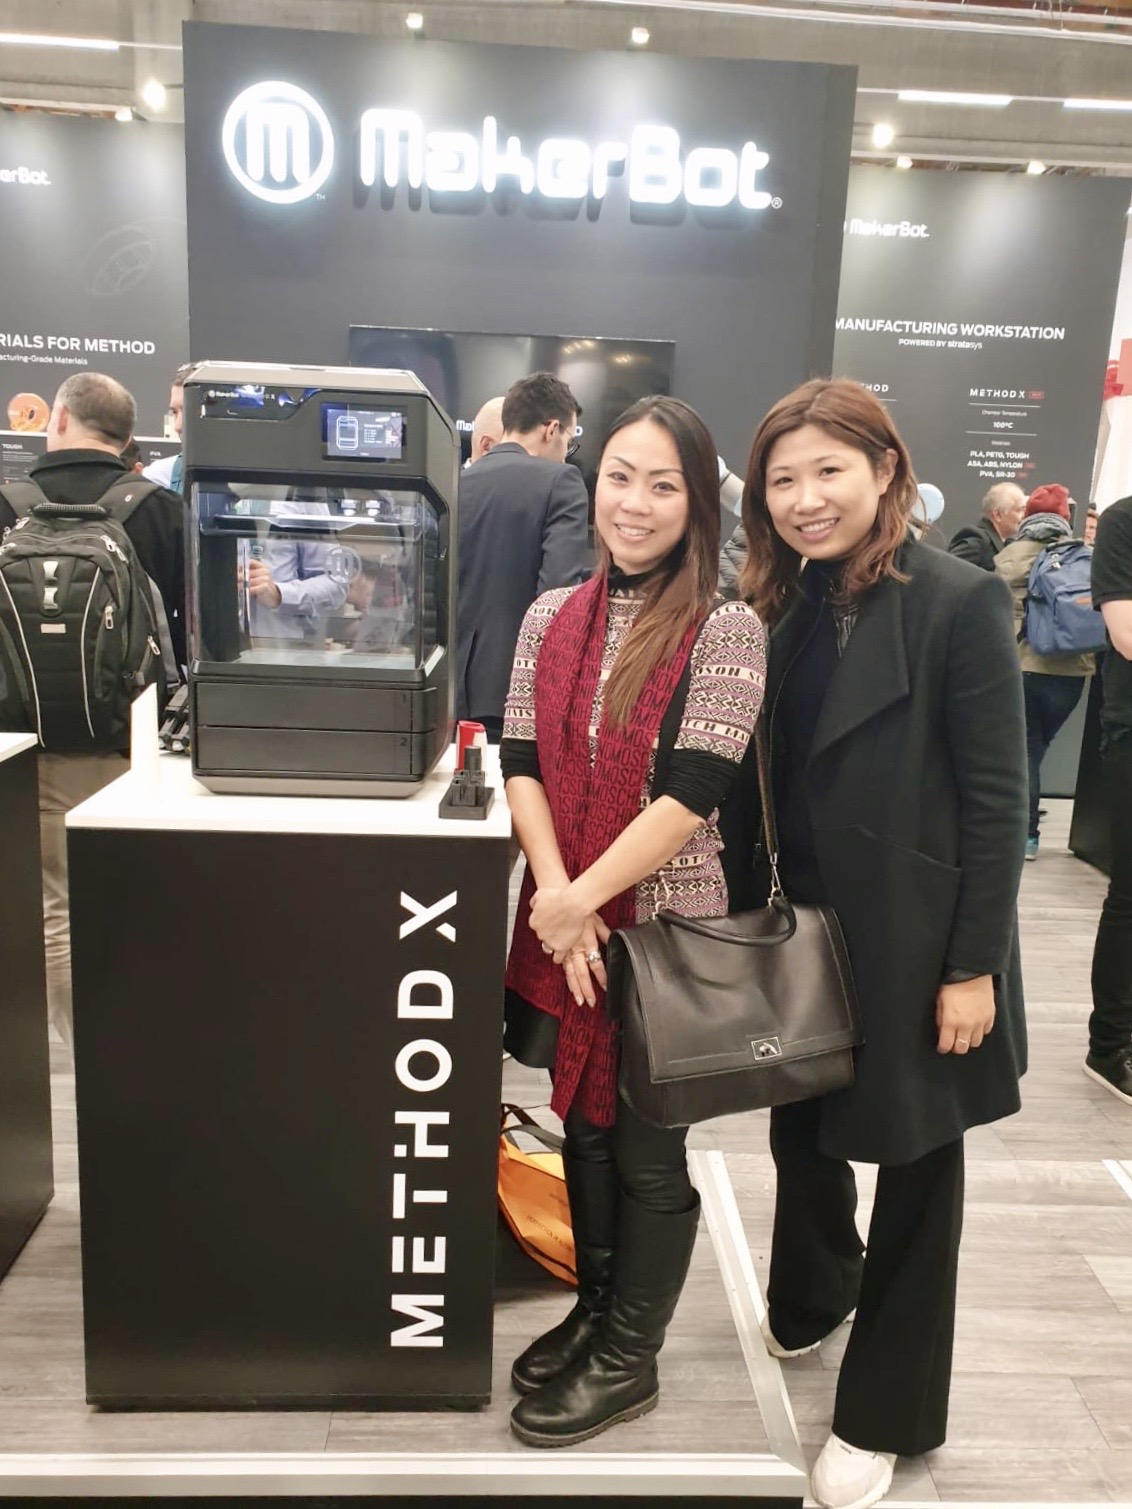 Ms. Sally Chuen (L), Applications and Sales Manager at Creatz3D, with Ms. Icy Xie (R), Makerbot Sales and Business Director for Greater China and Southeast Asia, after signing an exclusive distributor agreement for sales of METHOD X in Singapore and Vietnam.